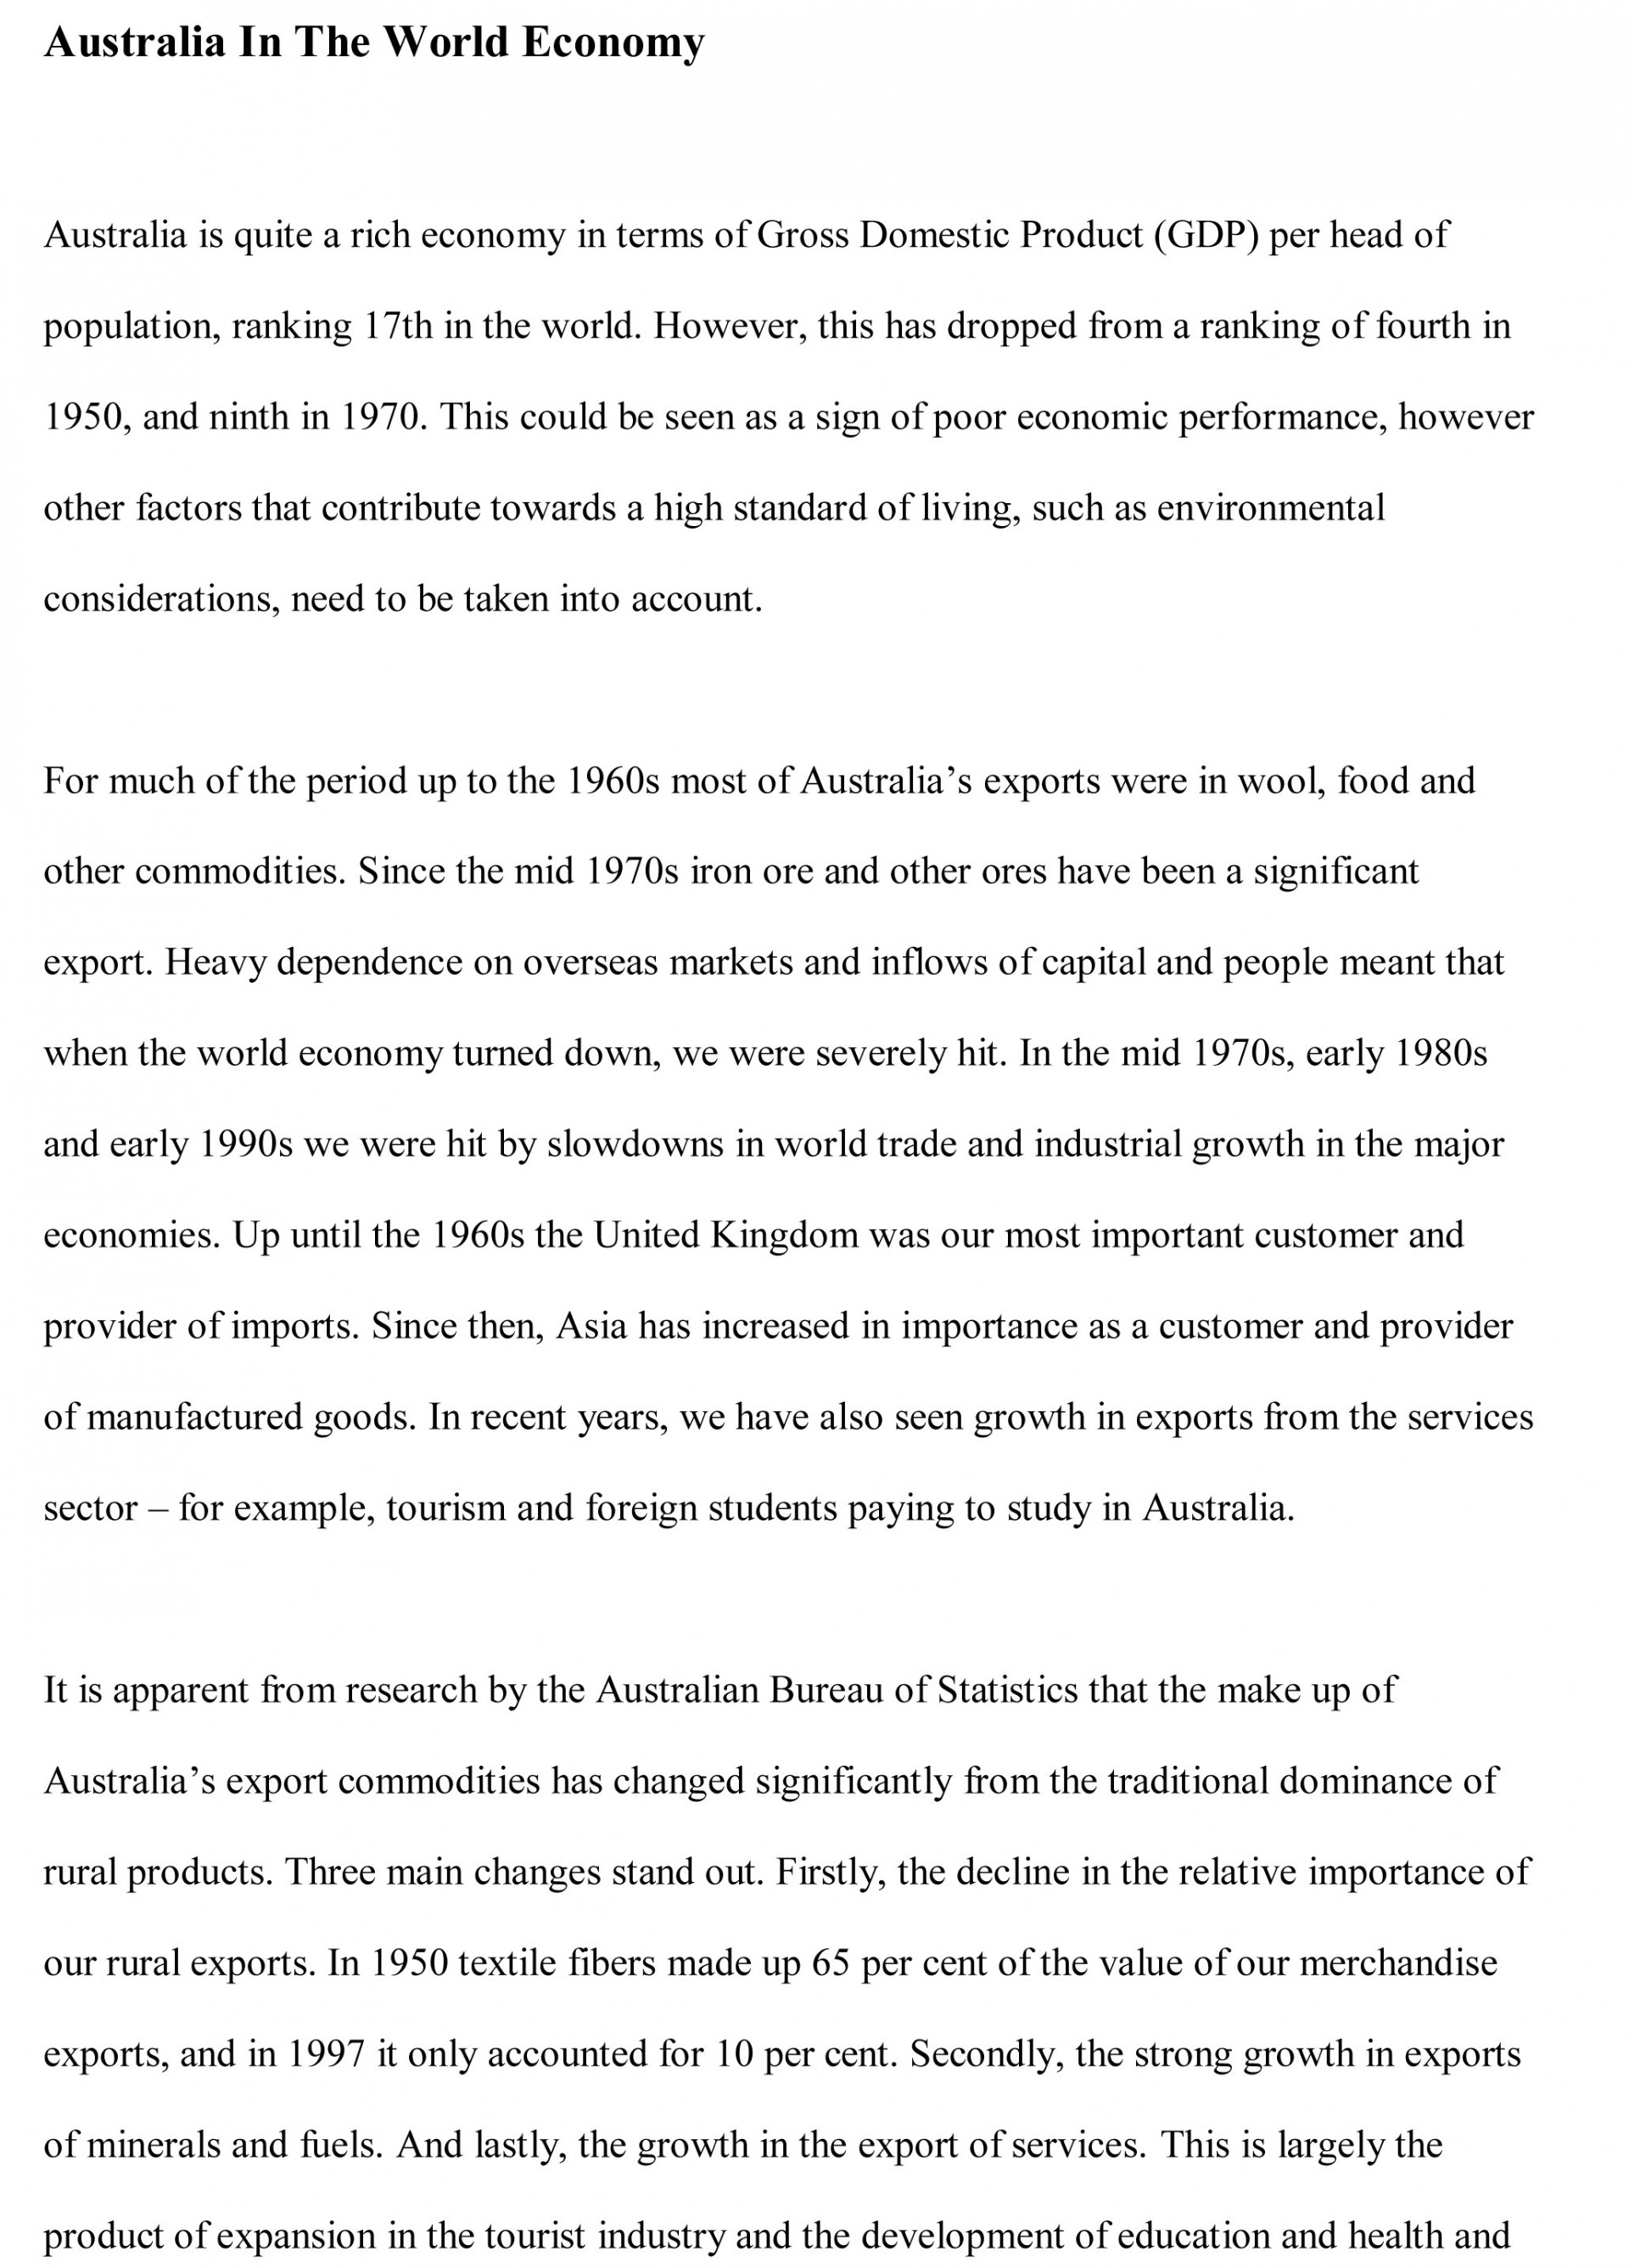 003 How Changed The World Essay Economics Free Sample Formidable 9 11 9/11 Did Today 1920